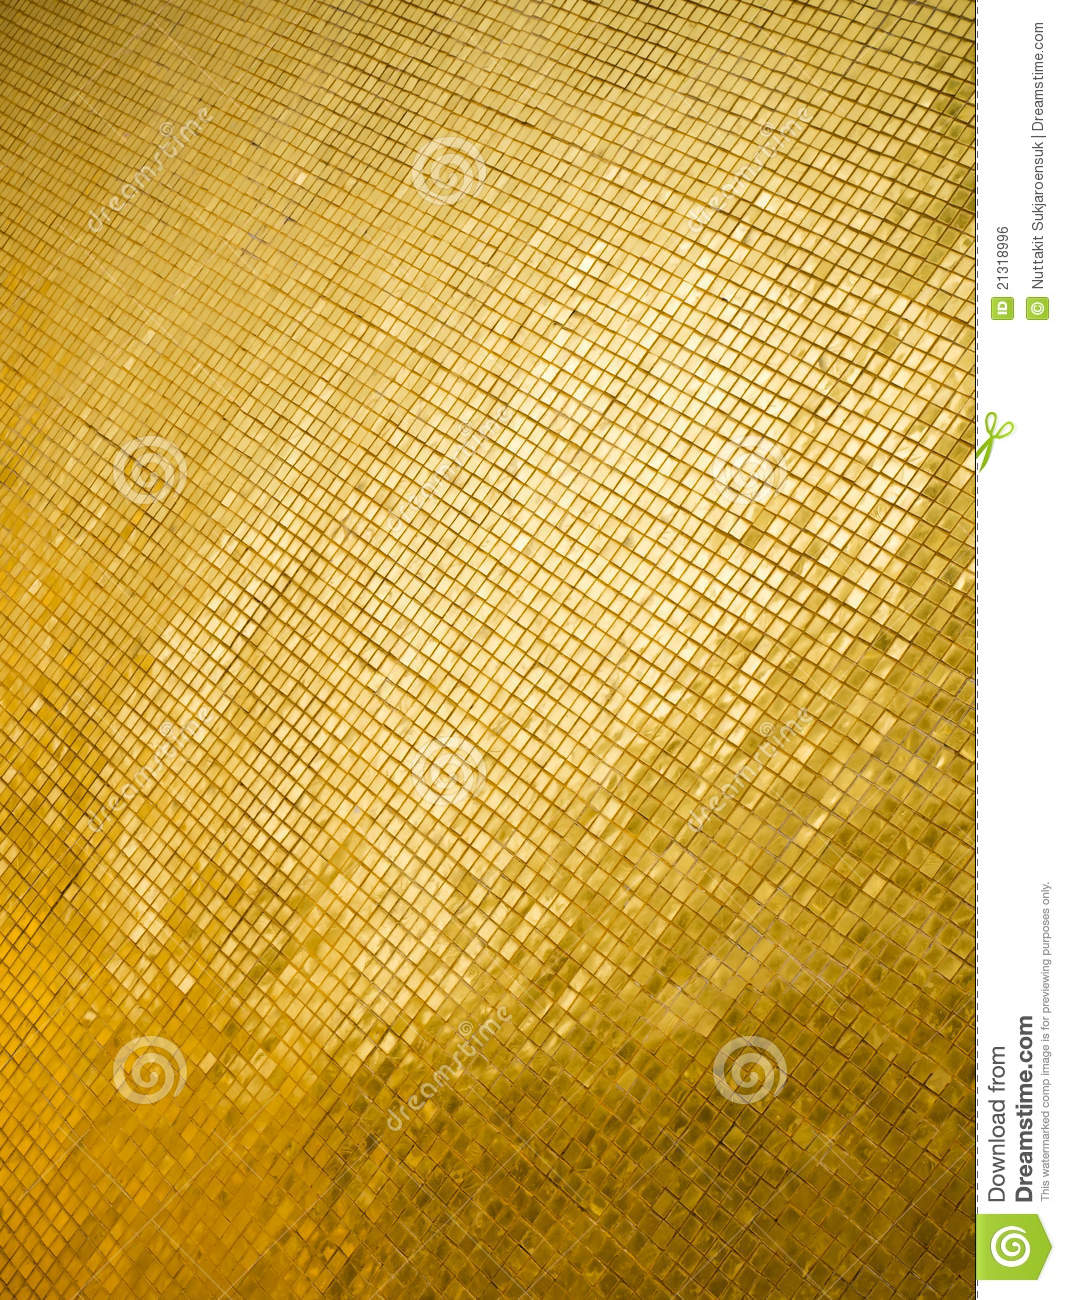 many little gold square royalty free stock image